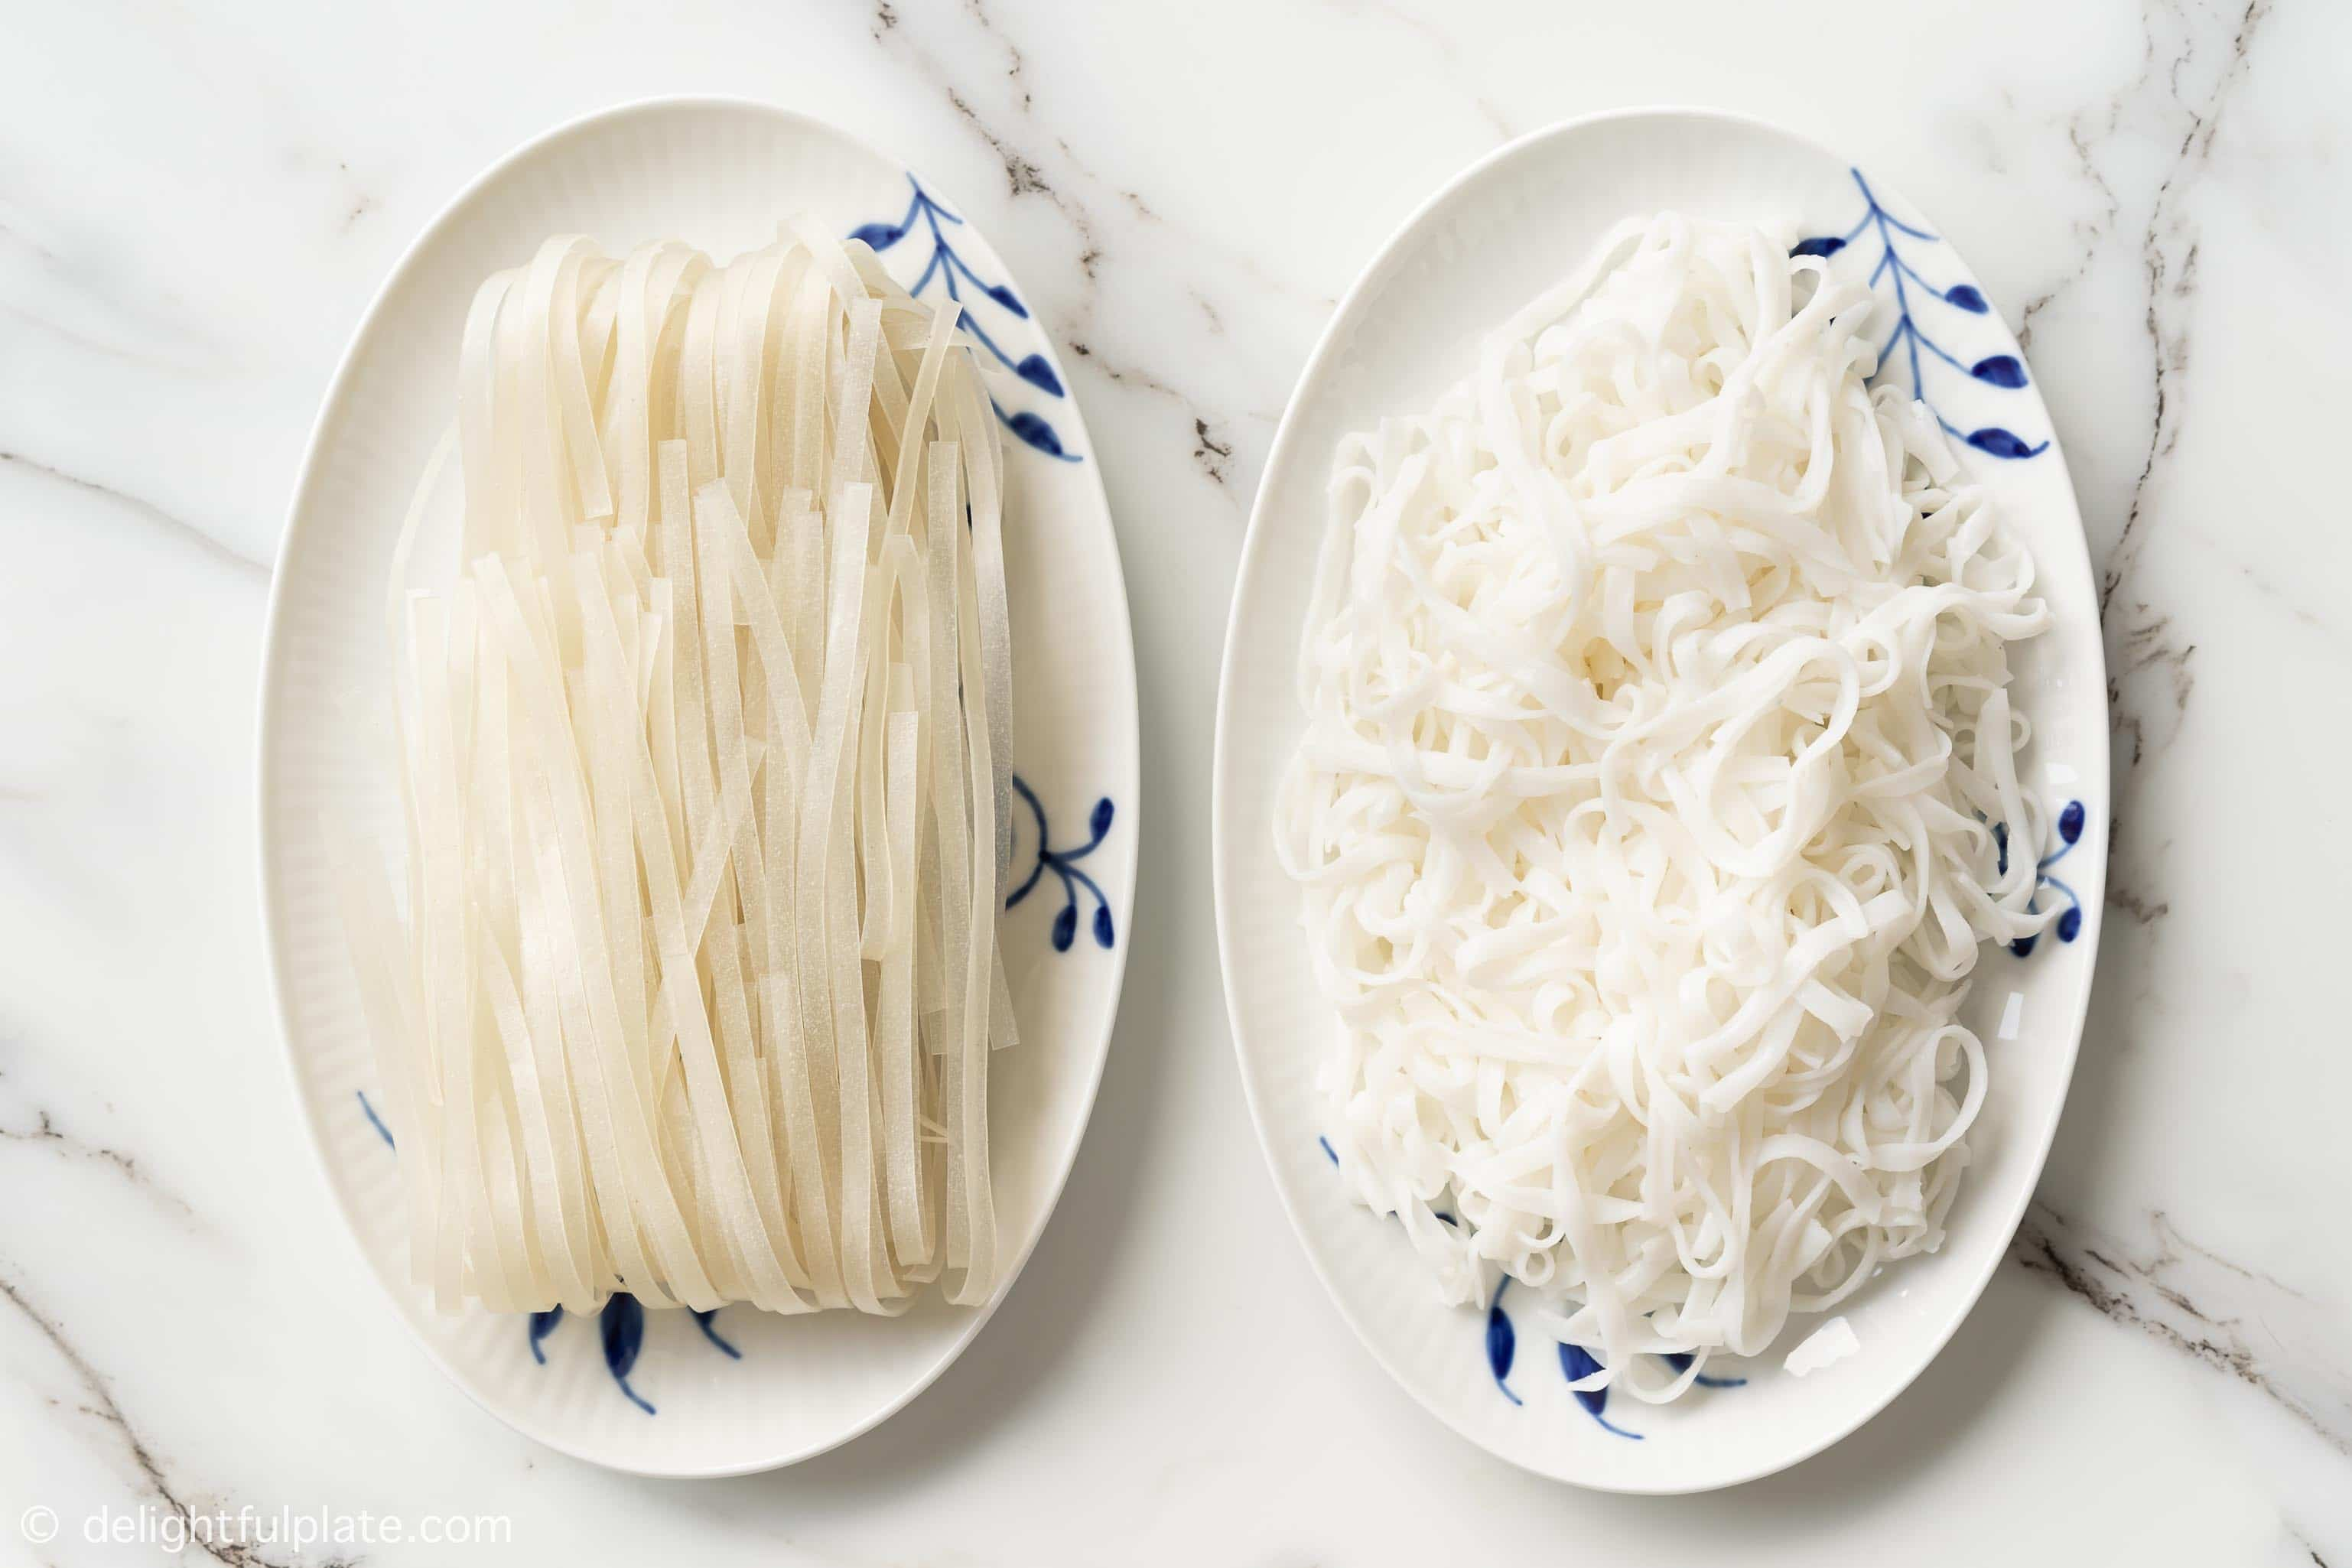 two plates with dried rice noodles and fresh rice noodles